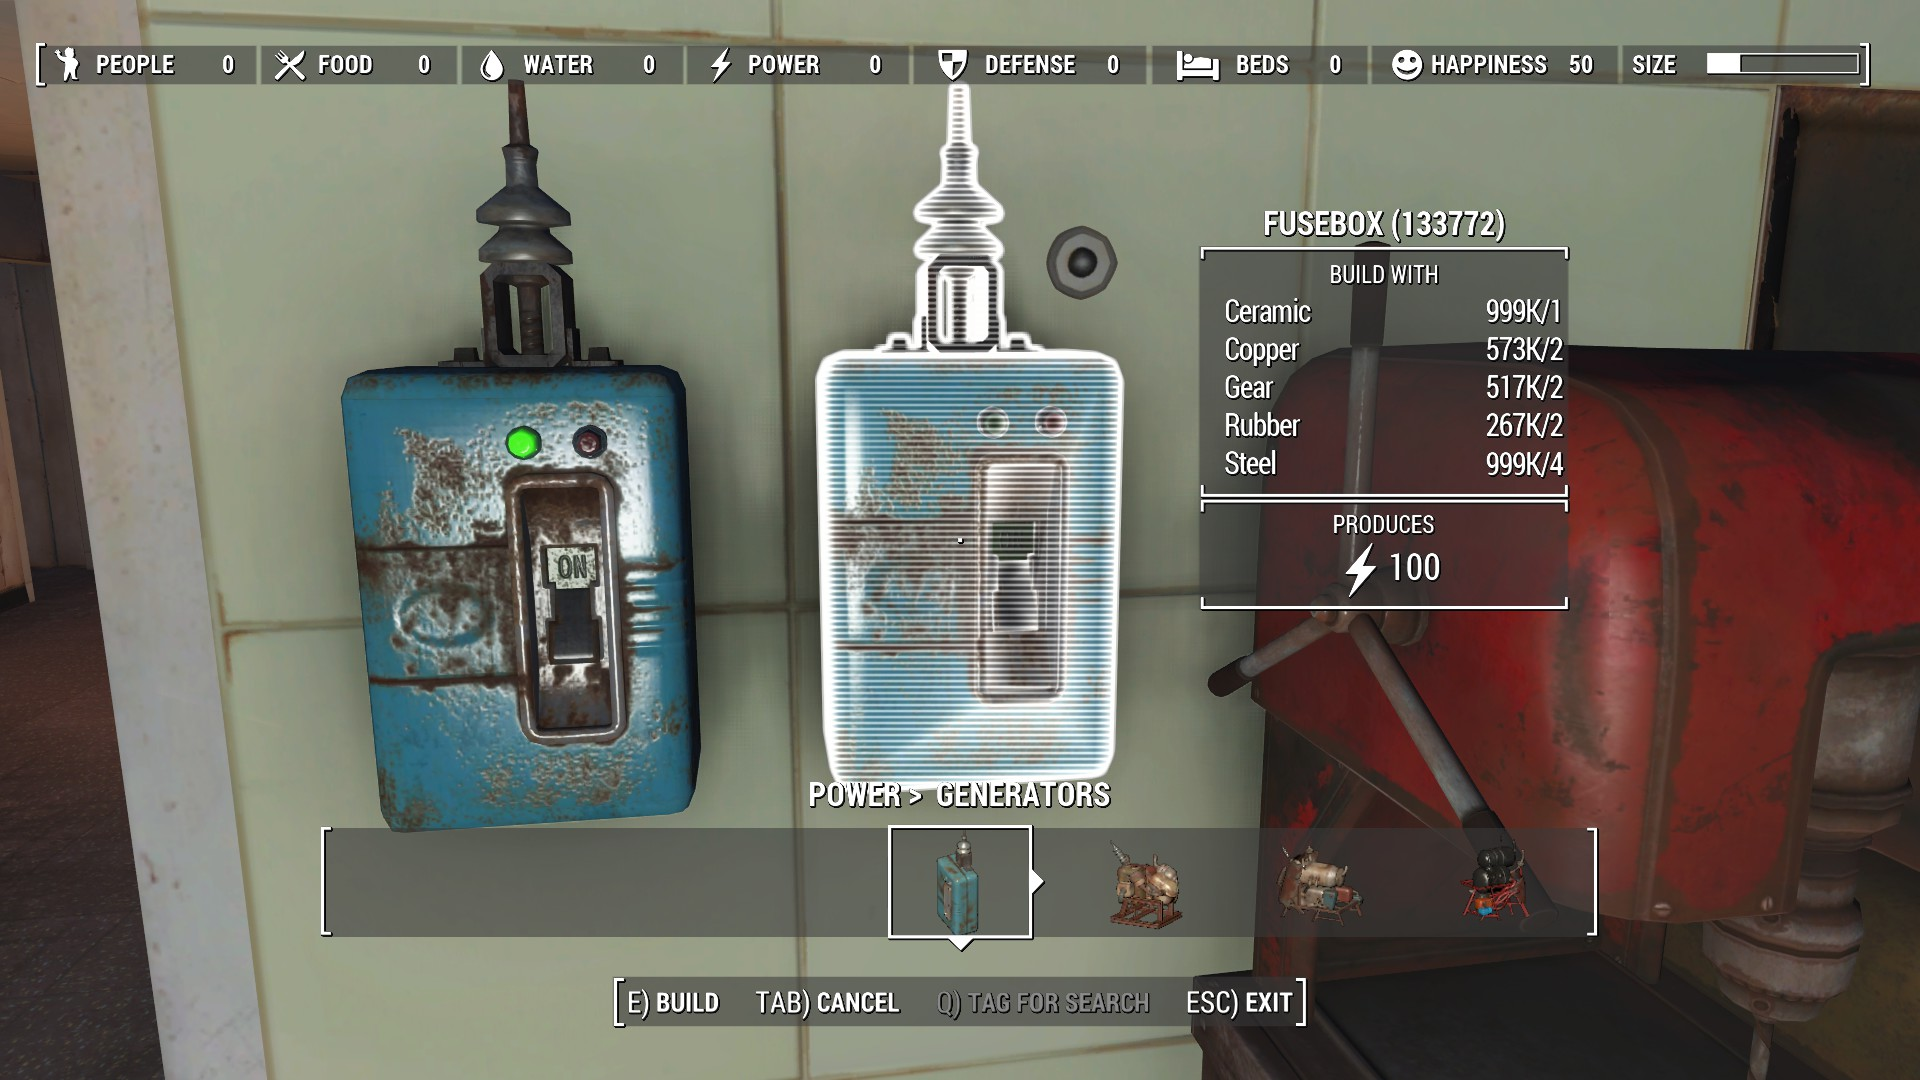 3429 0 1448747560 fallout 4 fuse box id fallout 3 xbox 360 \u2022 wiring diagram database fallout 4 fuse box lid at gsmportal.co